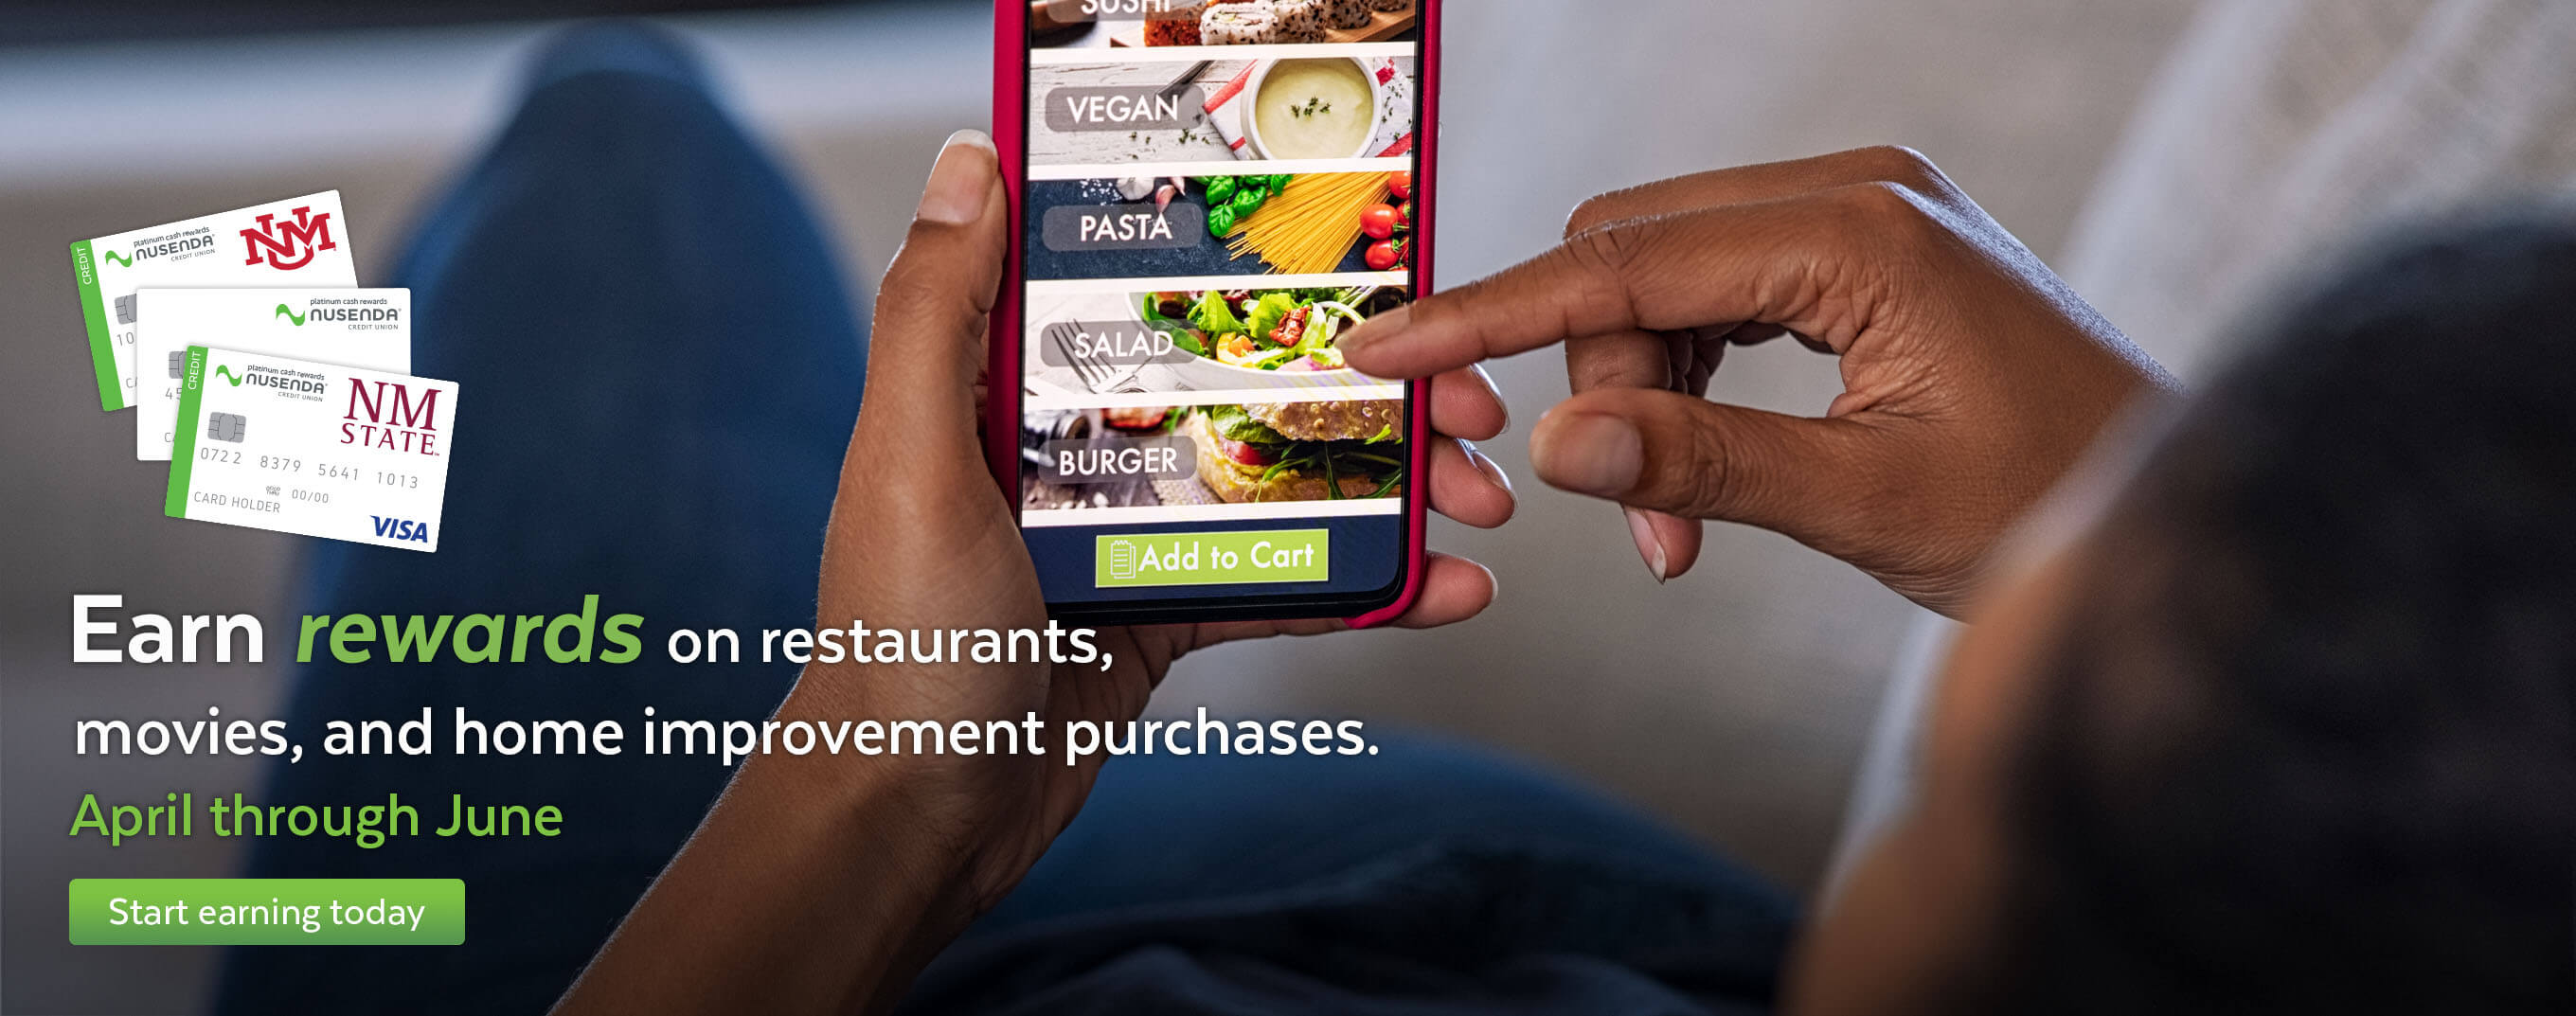 Earn rewards on restaurants, movies, and home improvement purchases now through June.